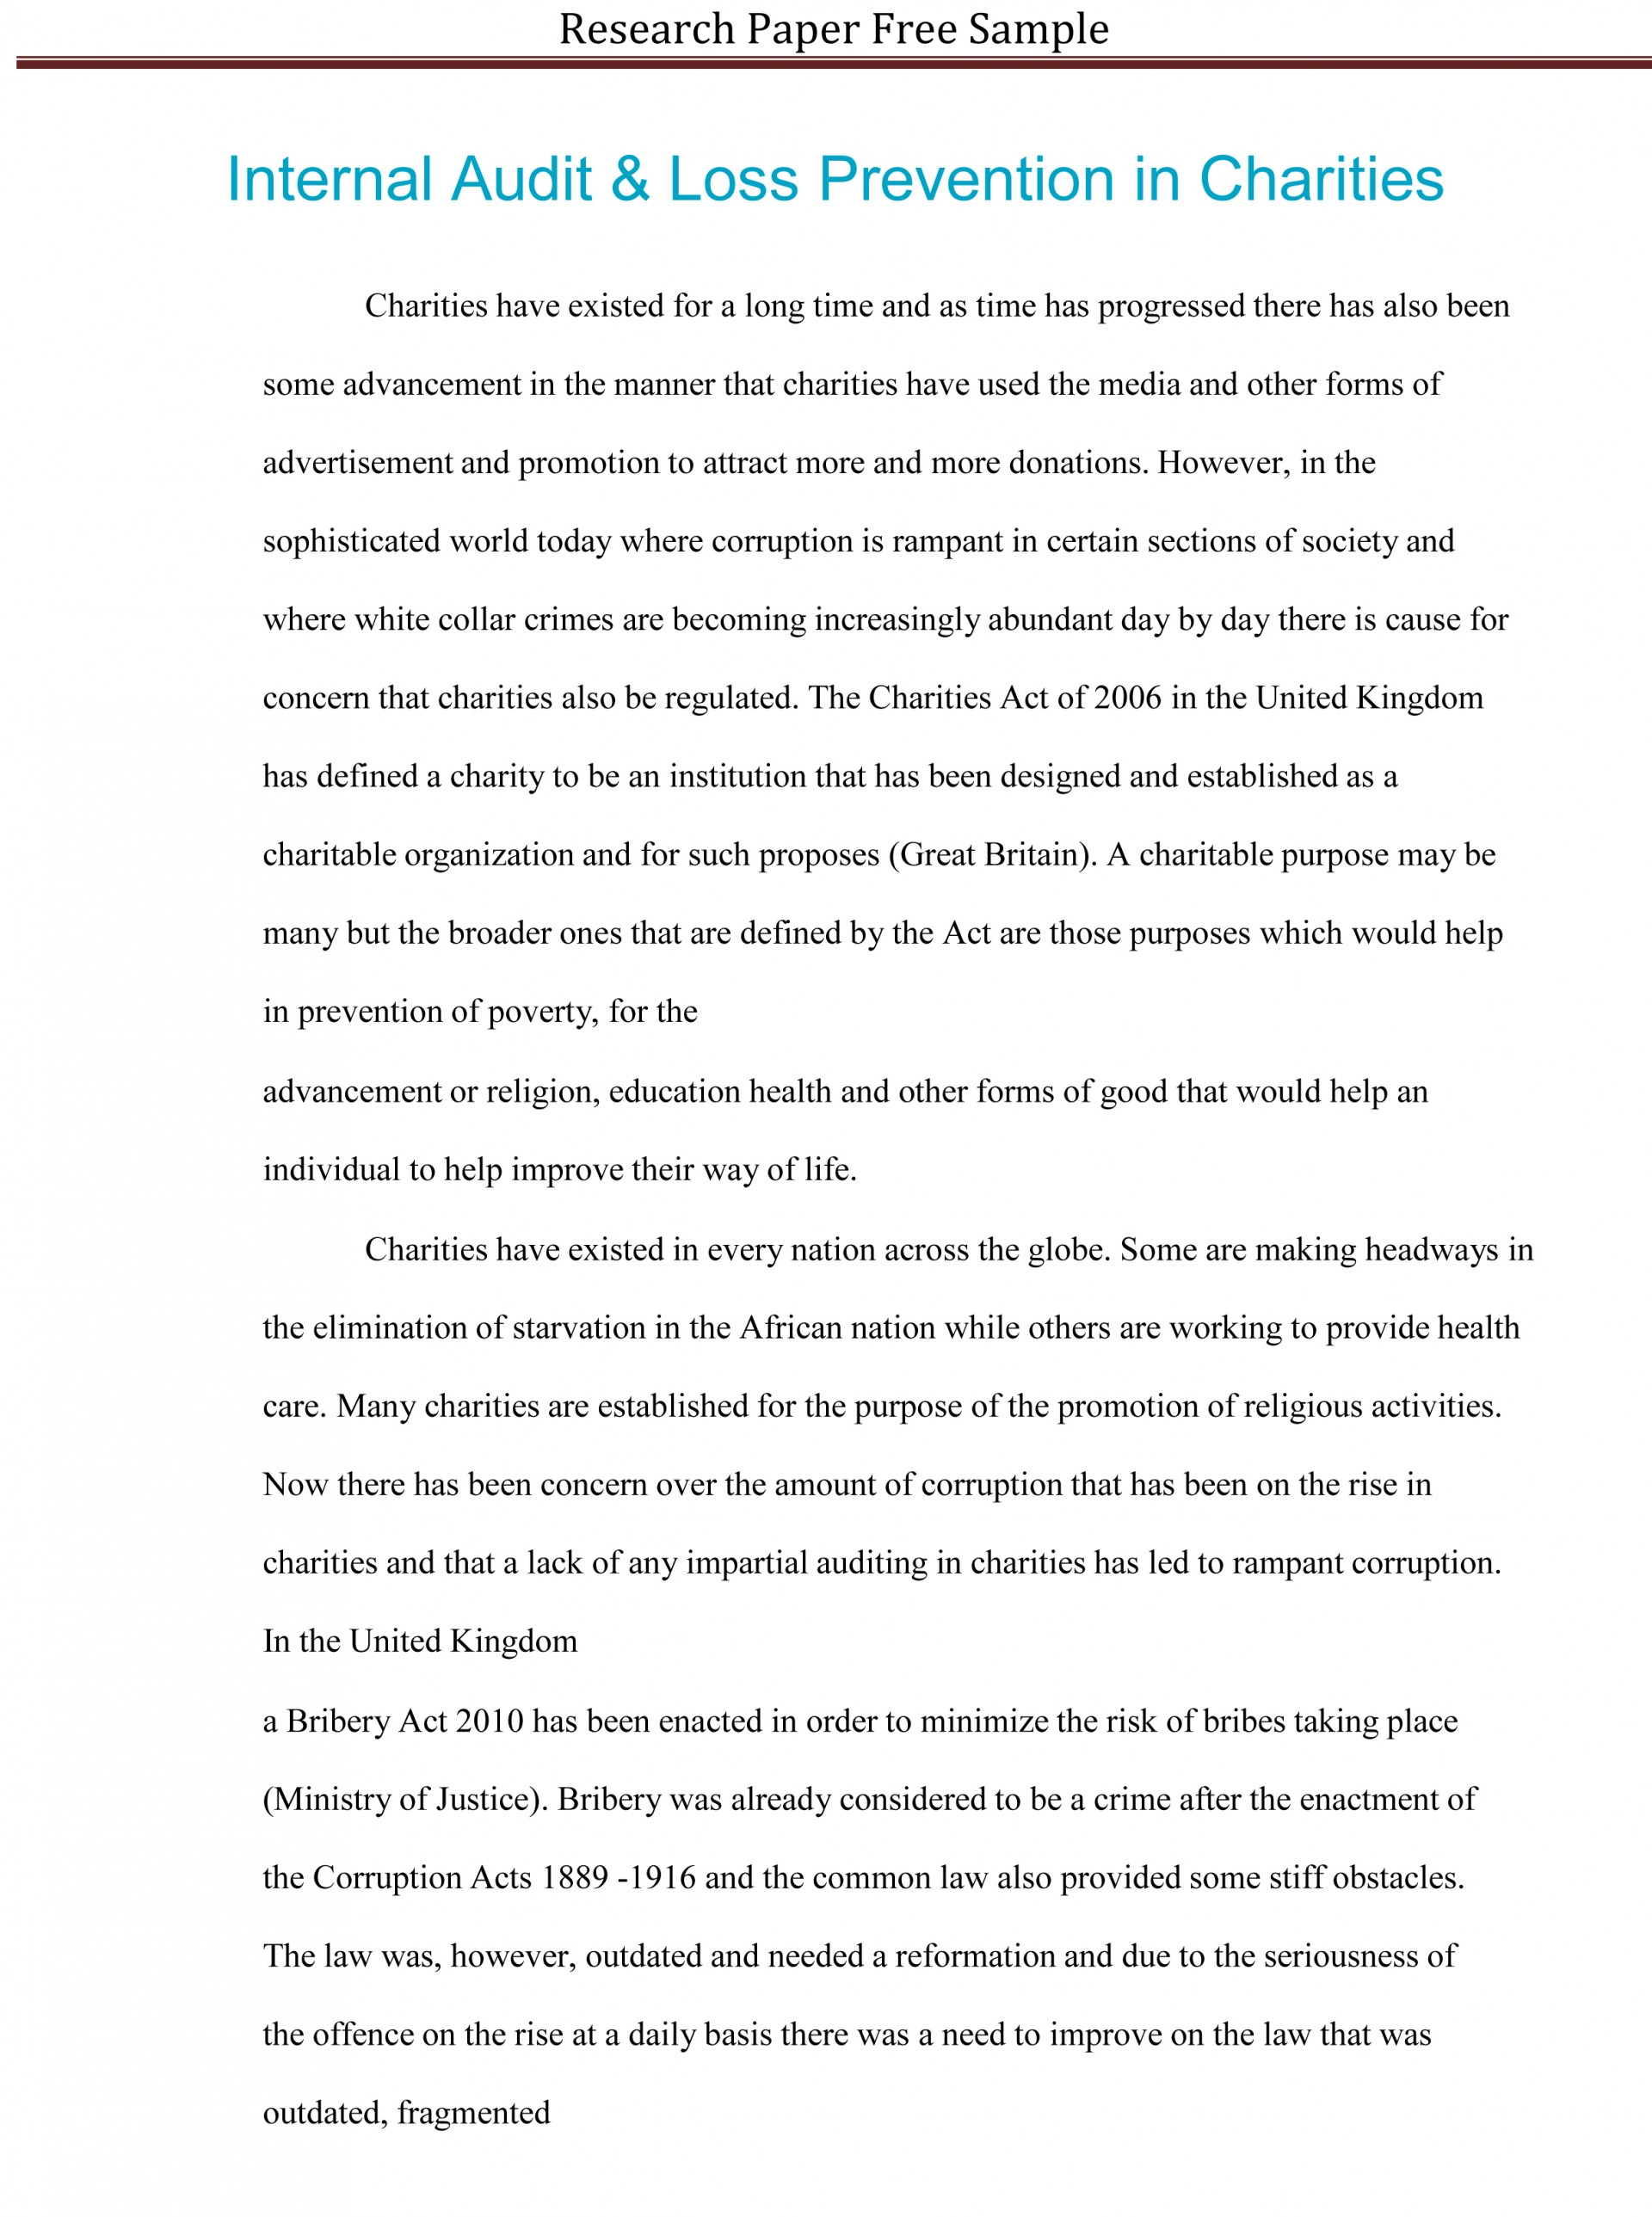 021 Research Paper Sample Essay Example High School Experience Dreaded Free 1920